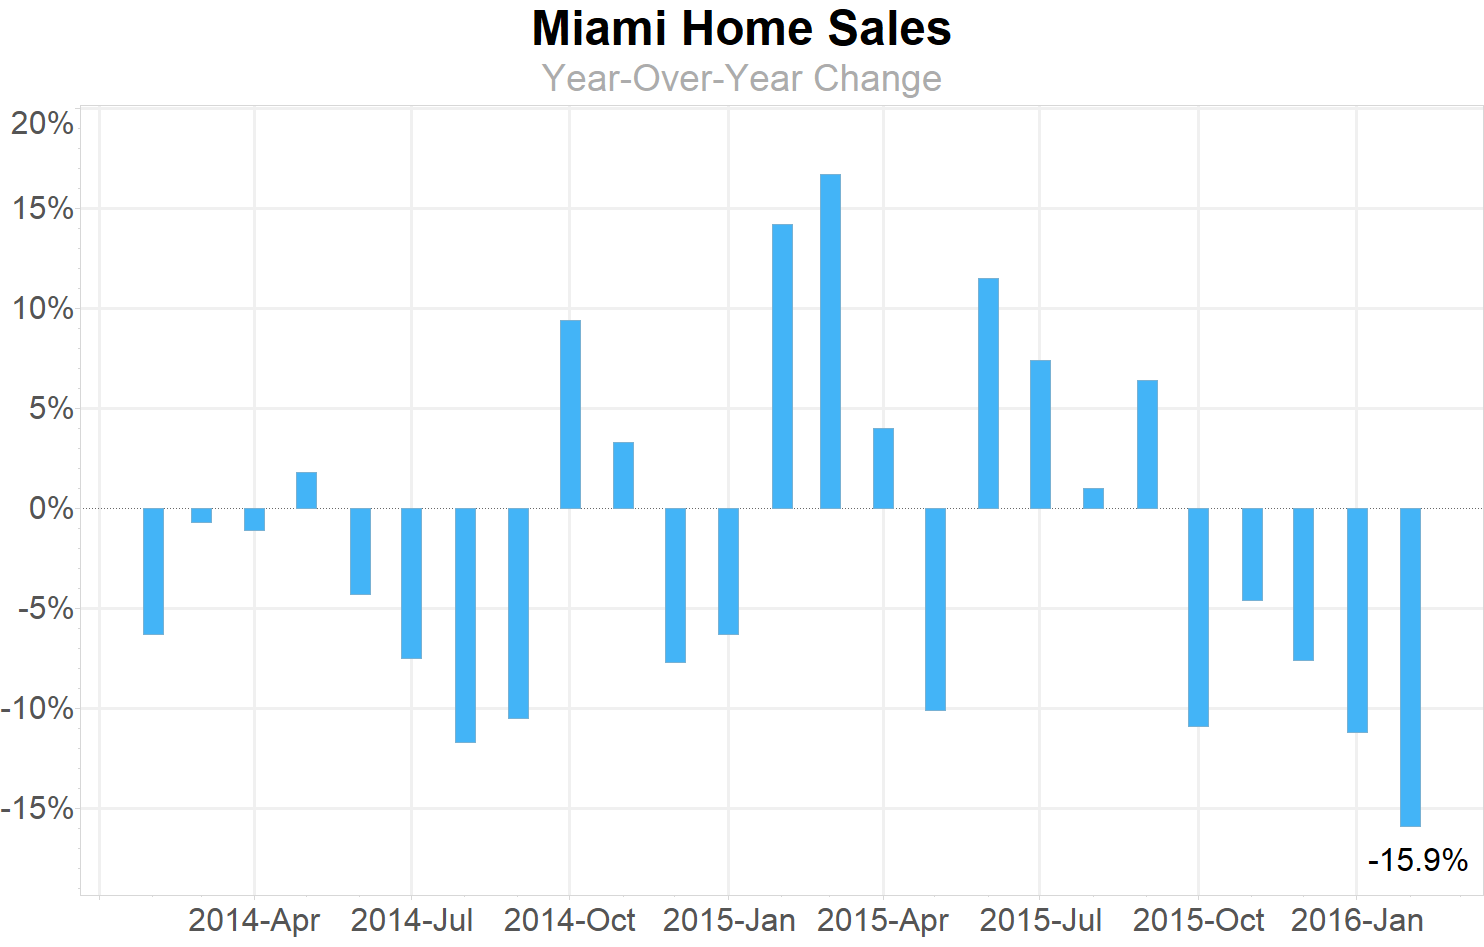 Miami Home Sales Year-Over-Year Change: 5 months of consecutive declines leading to a Correction in the Miami Real Estate Market